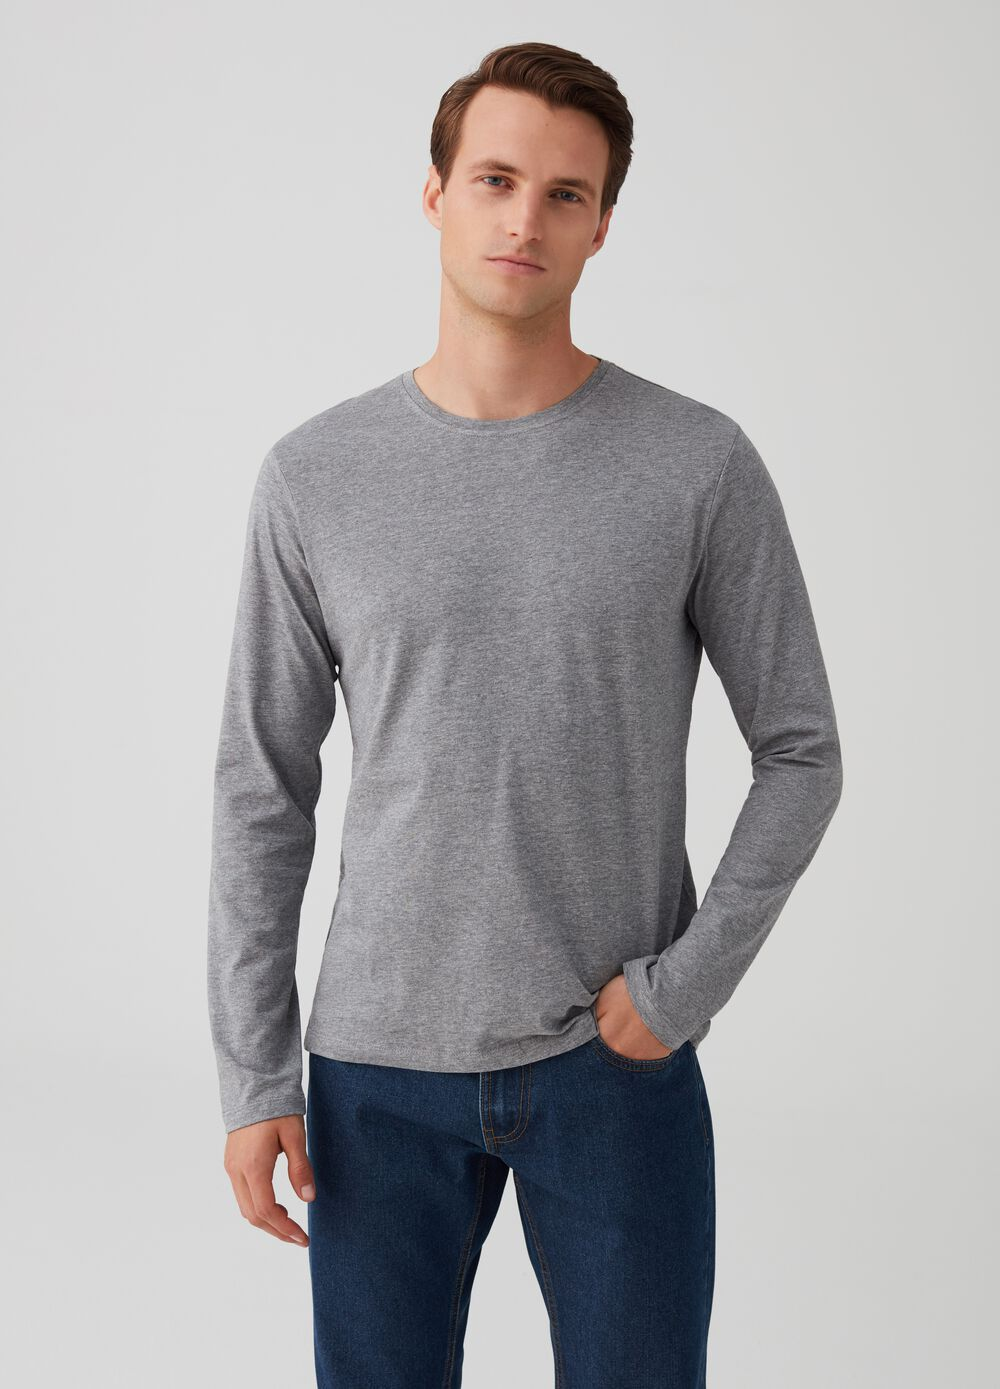 Round neck T-shirt with long sleeves